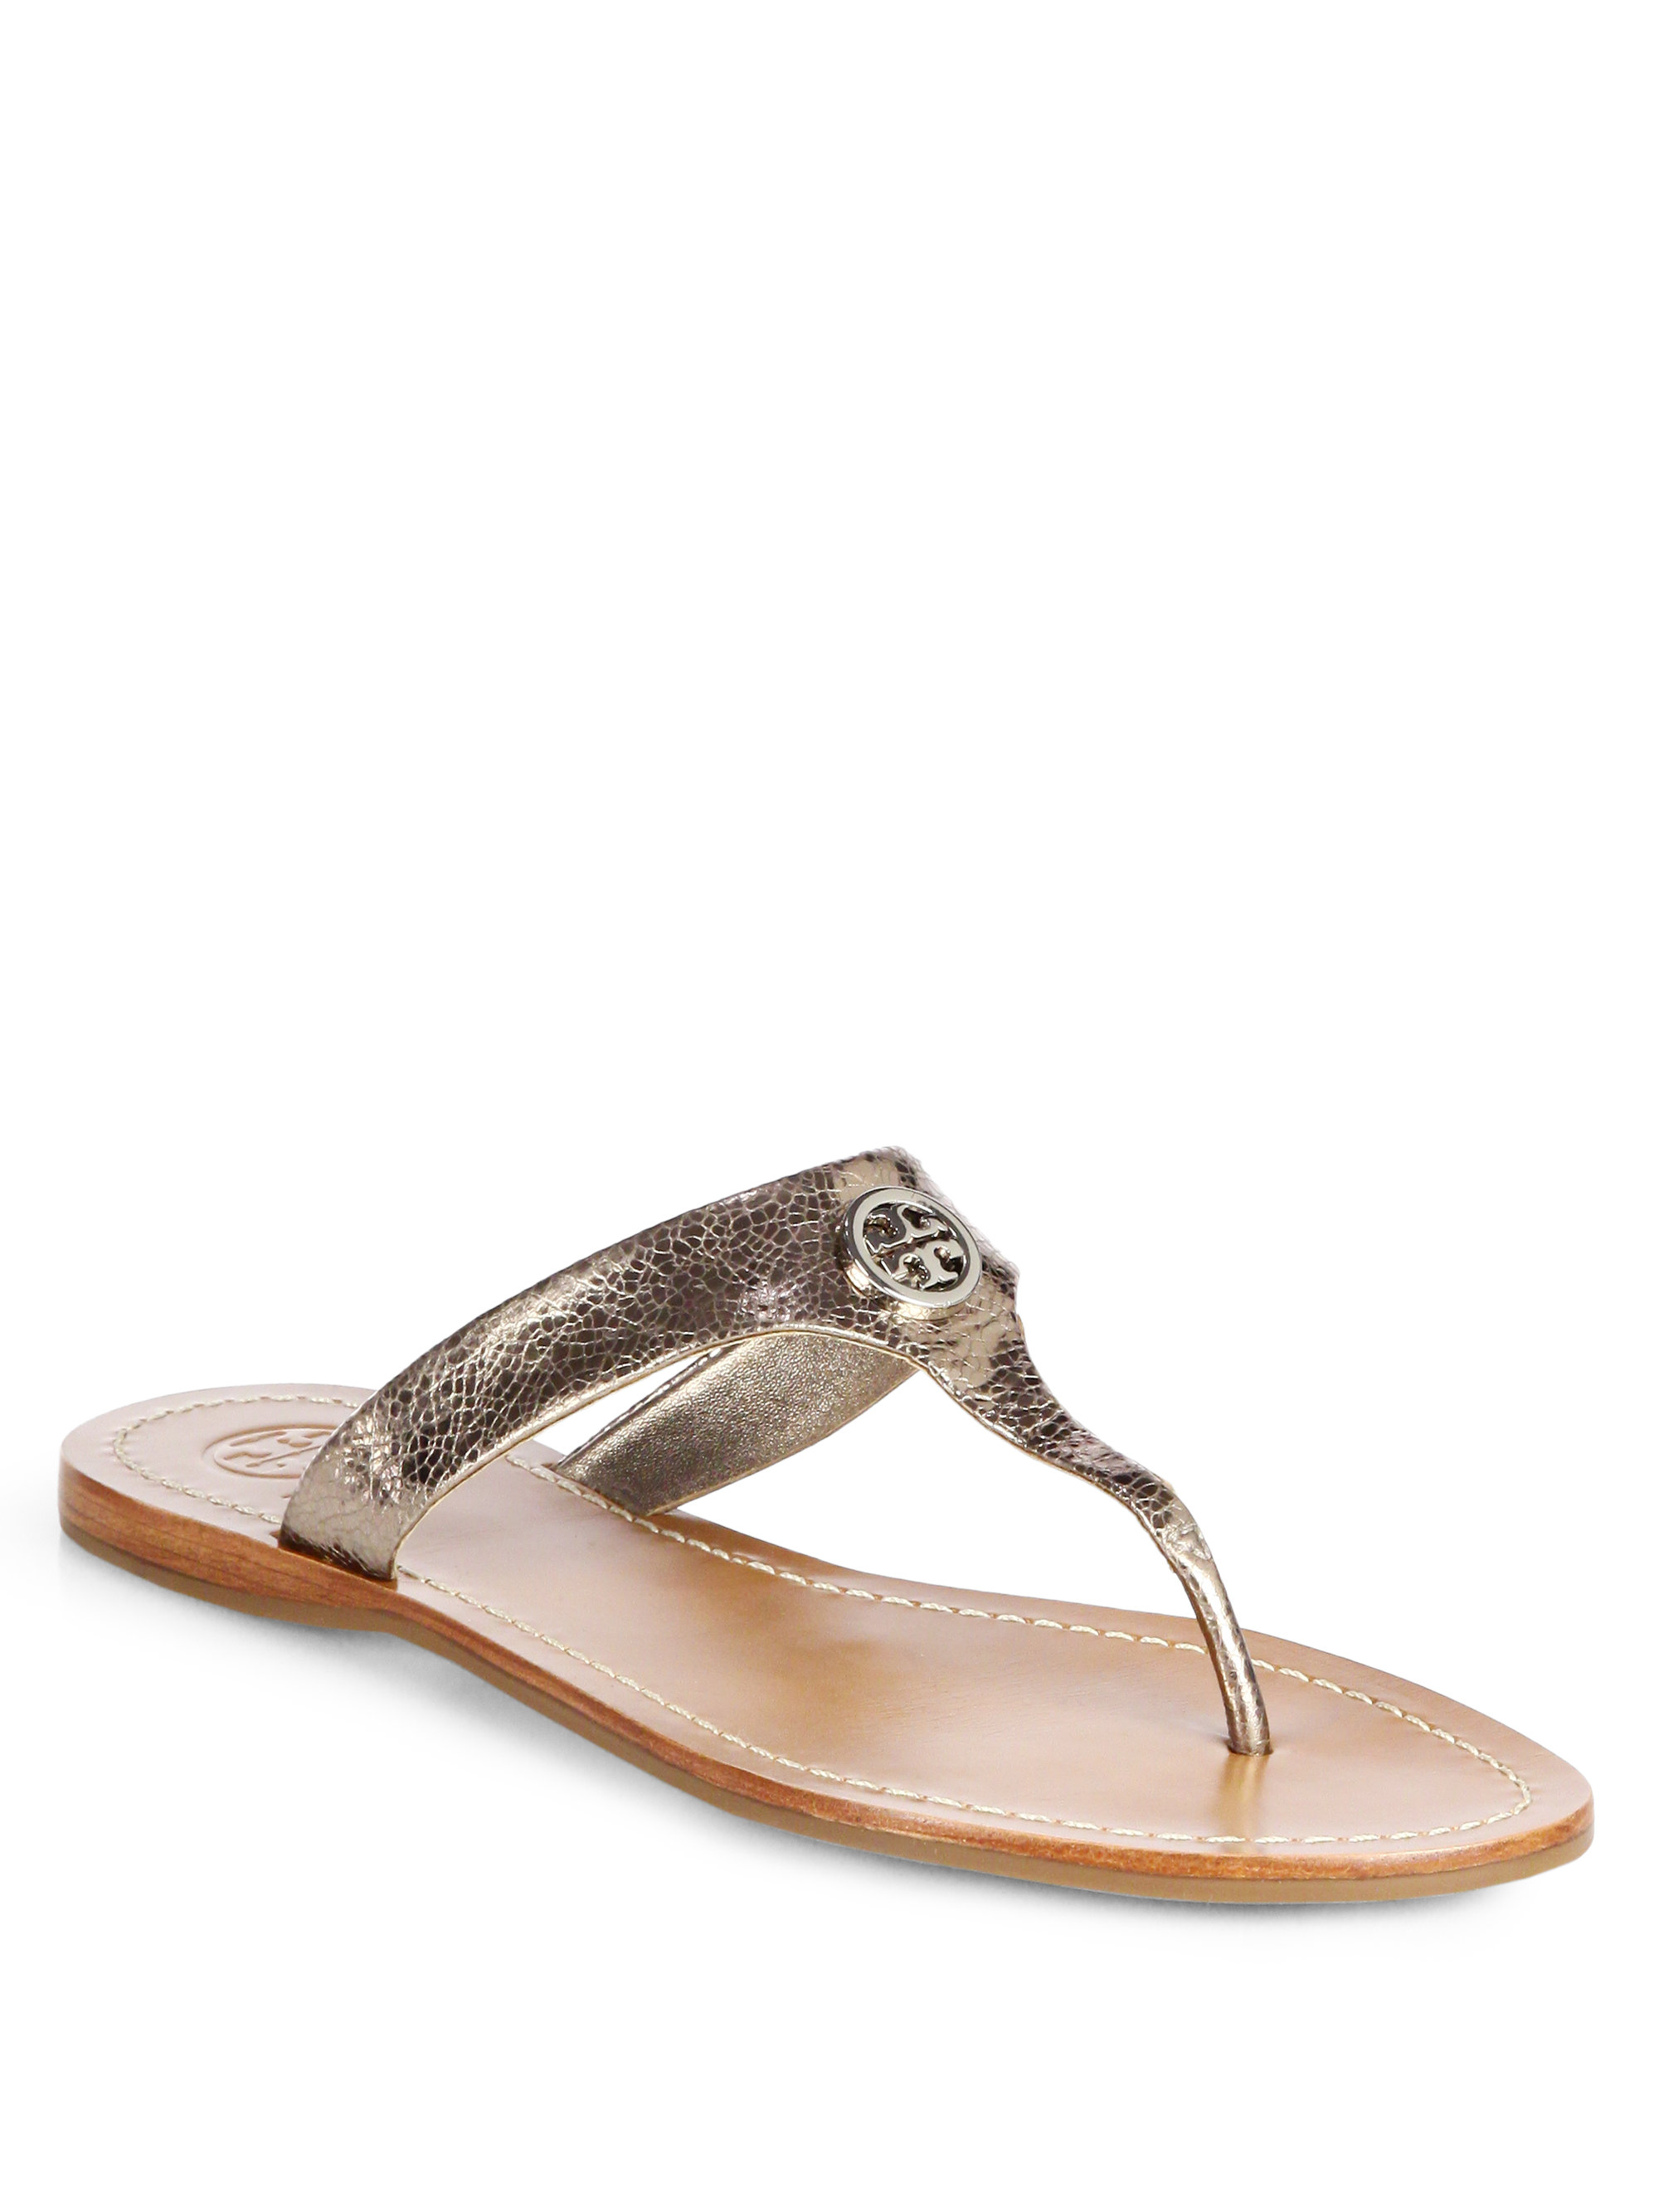 514188a6a Lyst - Tory Burch Cameron Crackled Metallic Leather Thong Sandals in ...